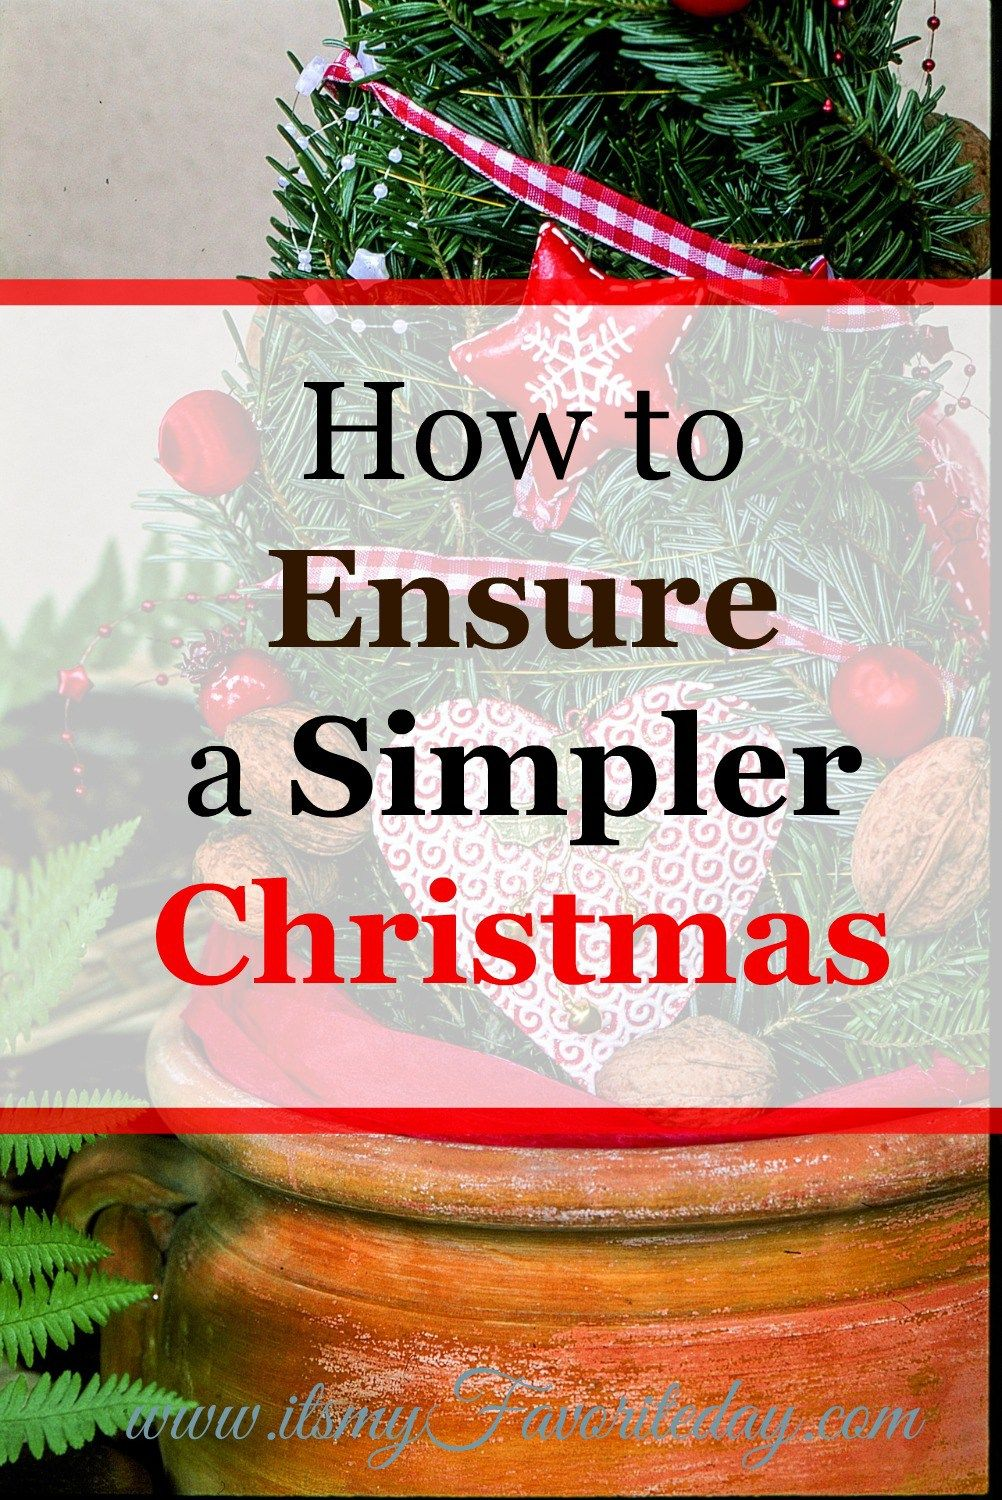 Love these tips, great ideas for making a simpler Christmas.  If you are looking for practical ideas for a simplified Christmas, this is a must read!